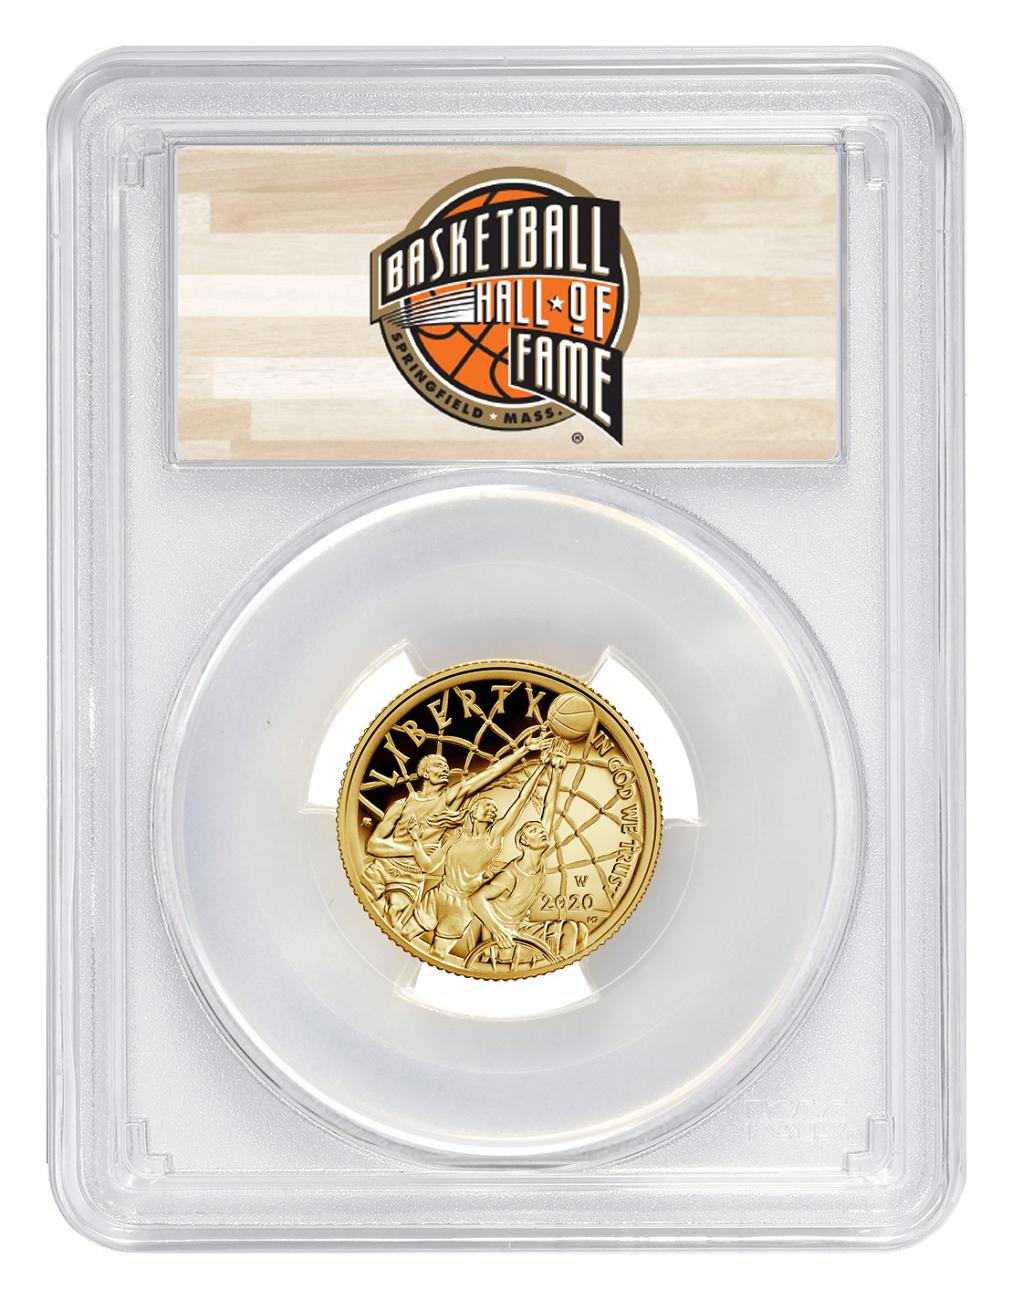 2020-W $5 Basketball Hall of Fame Gold Proof Coin PCGS PR70 DCAM FS Hall of Fame Label